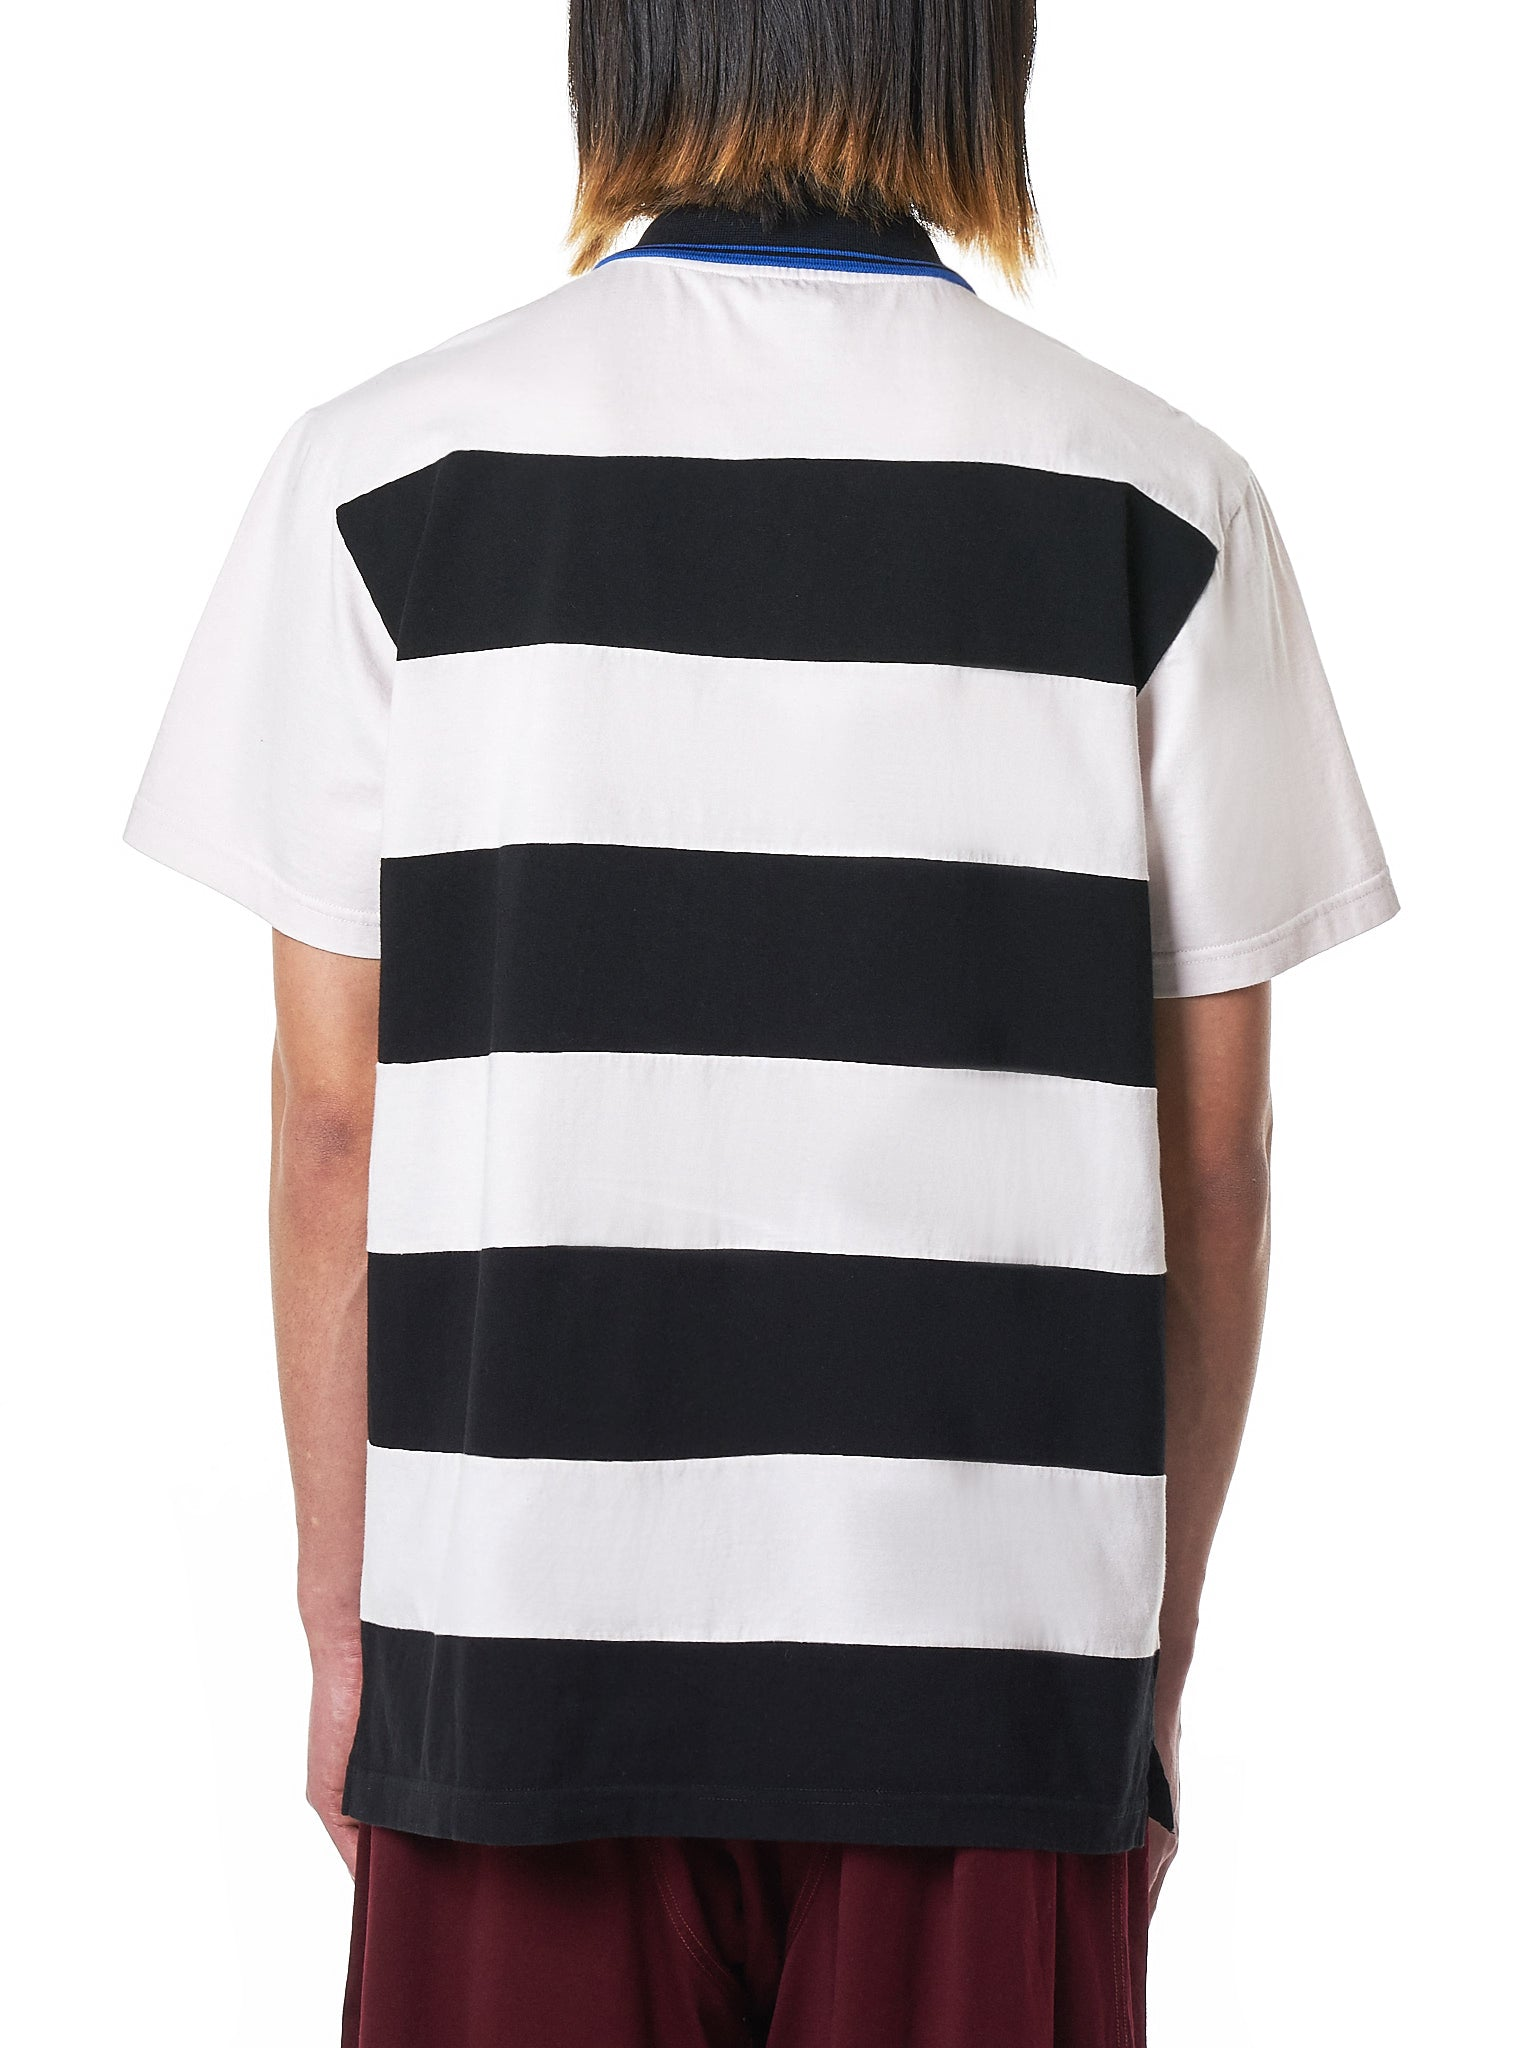 Marni Striped Polo - Hlorenzo Back